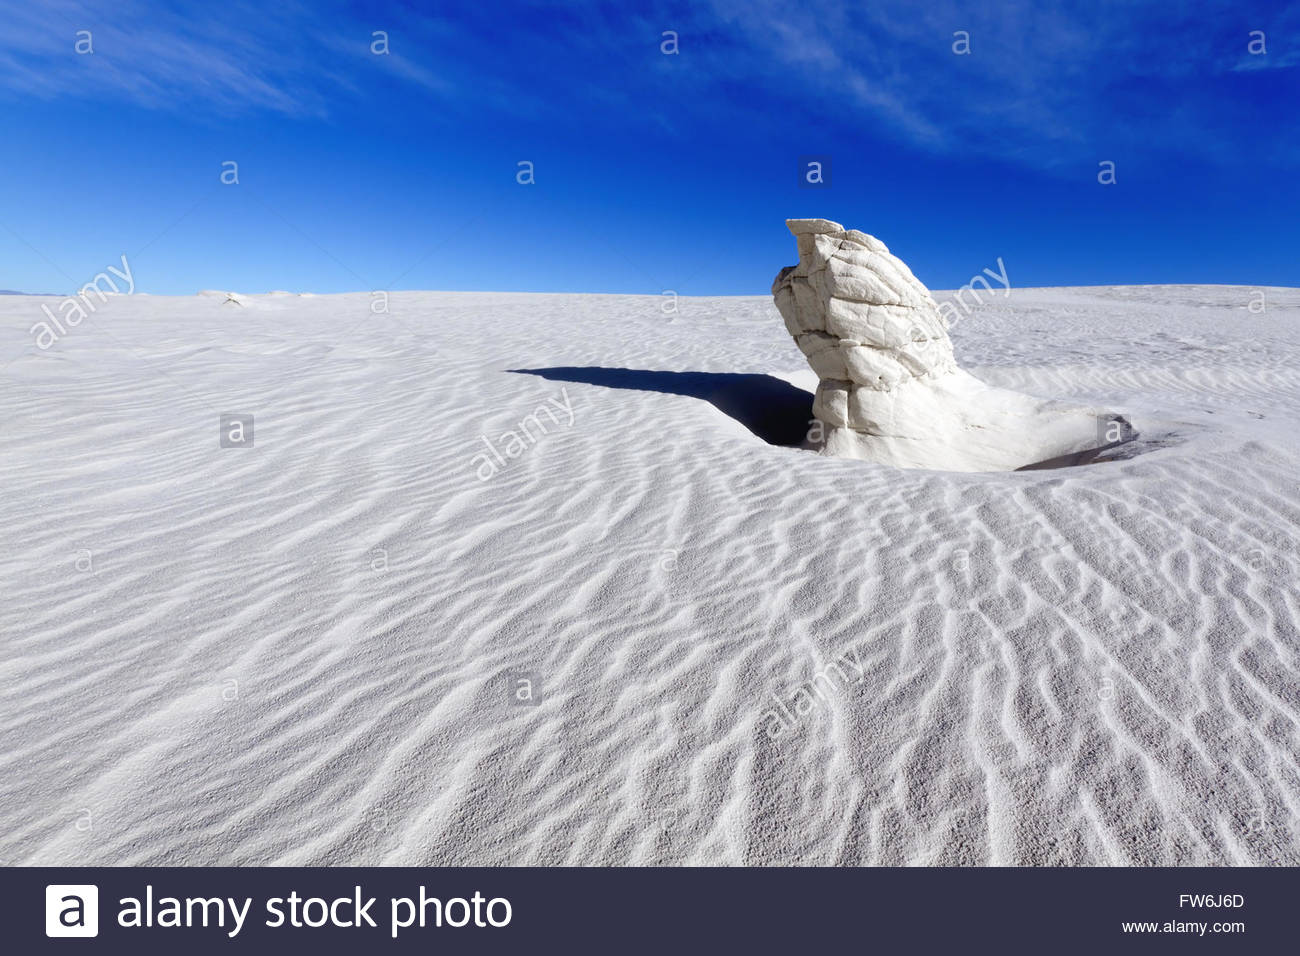 Gypsum Pinnacle, White Sands National Monument, New Mexico - Stock Image